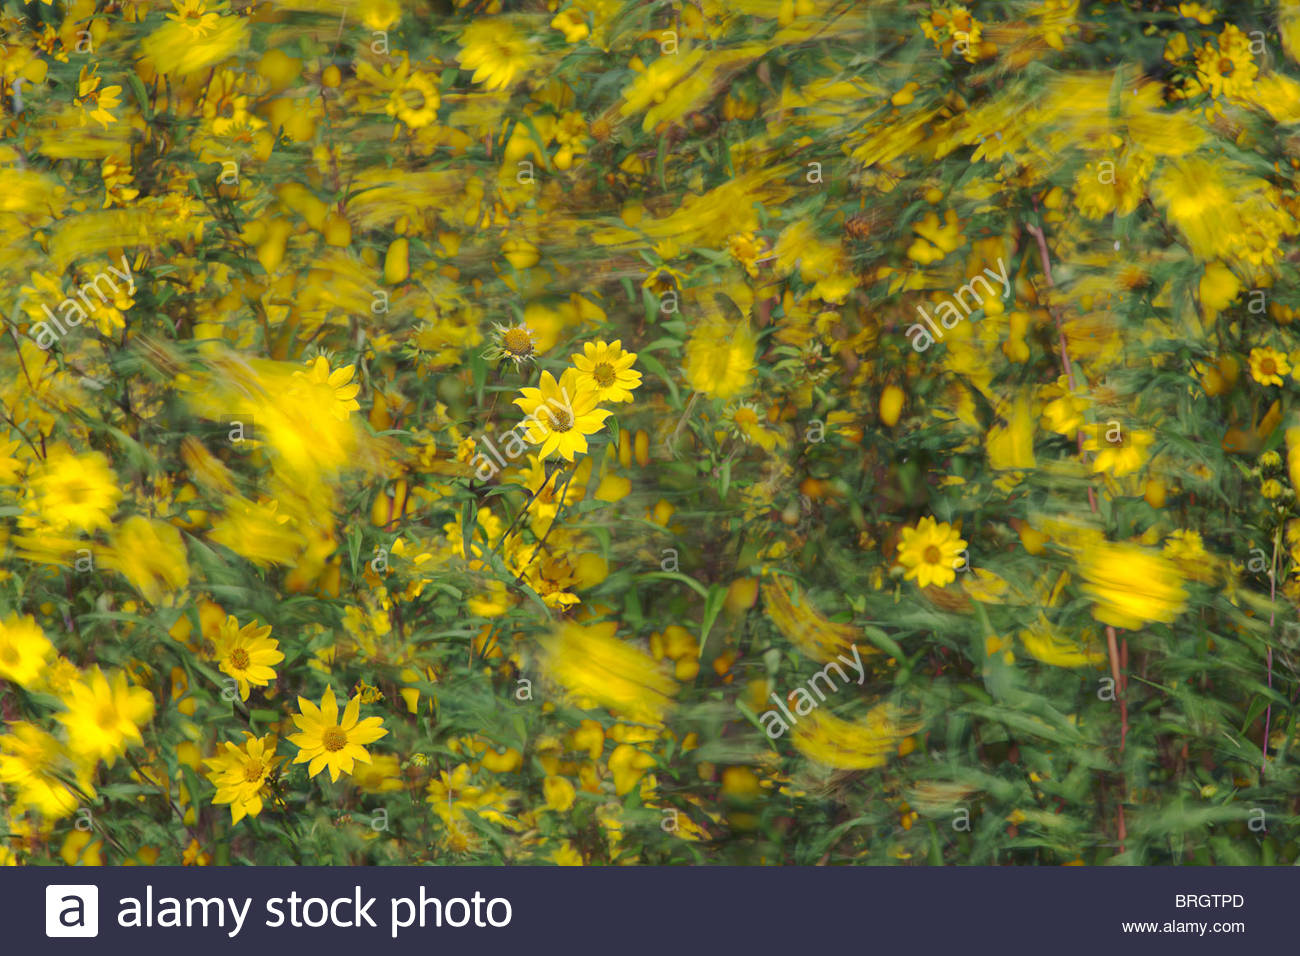 Giant sunflower or Helianthus giganteus blown by the wind in Rouge Park an urban wilderness in Toronto Ontario Canada - Stock Image